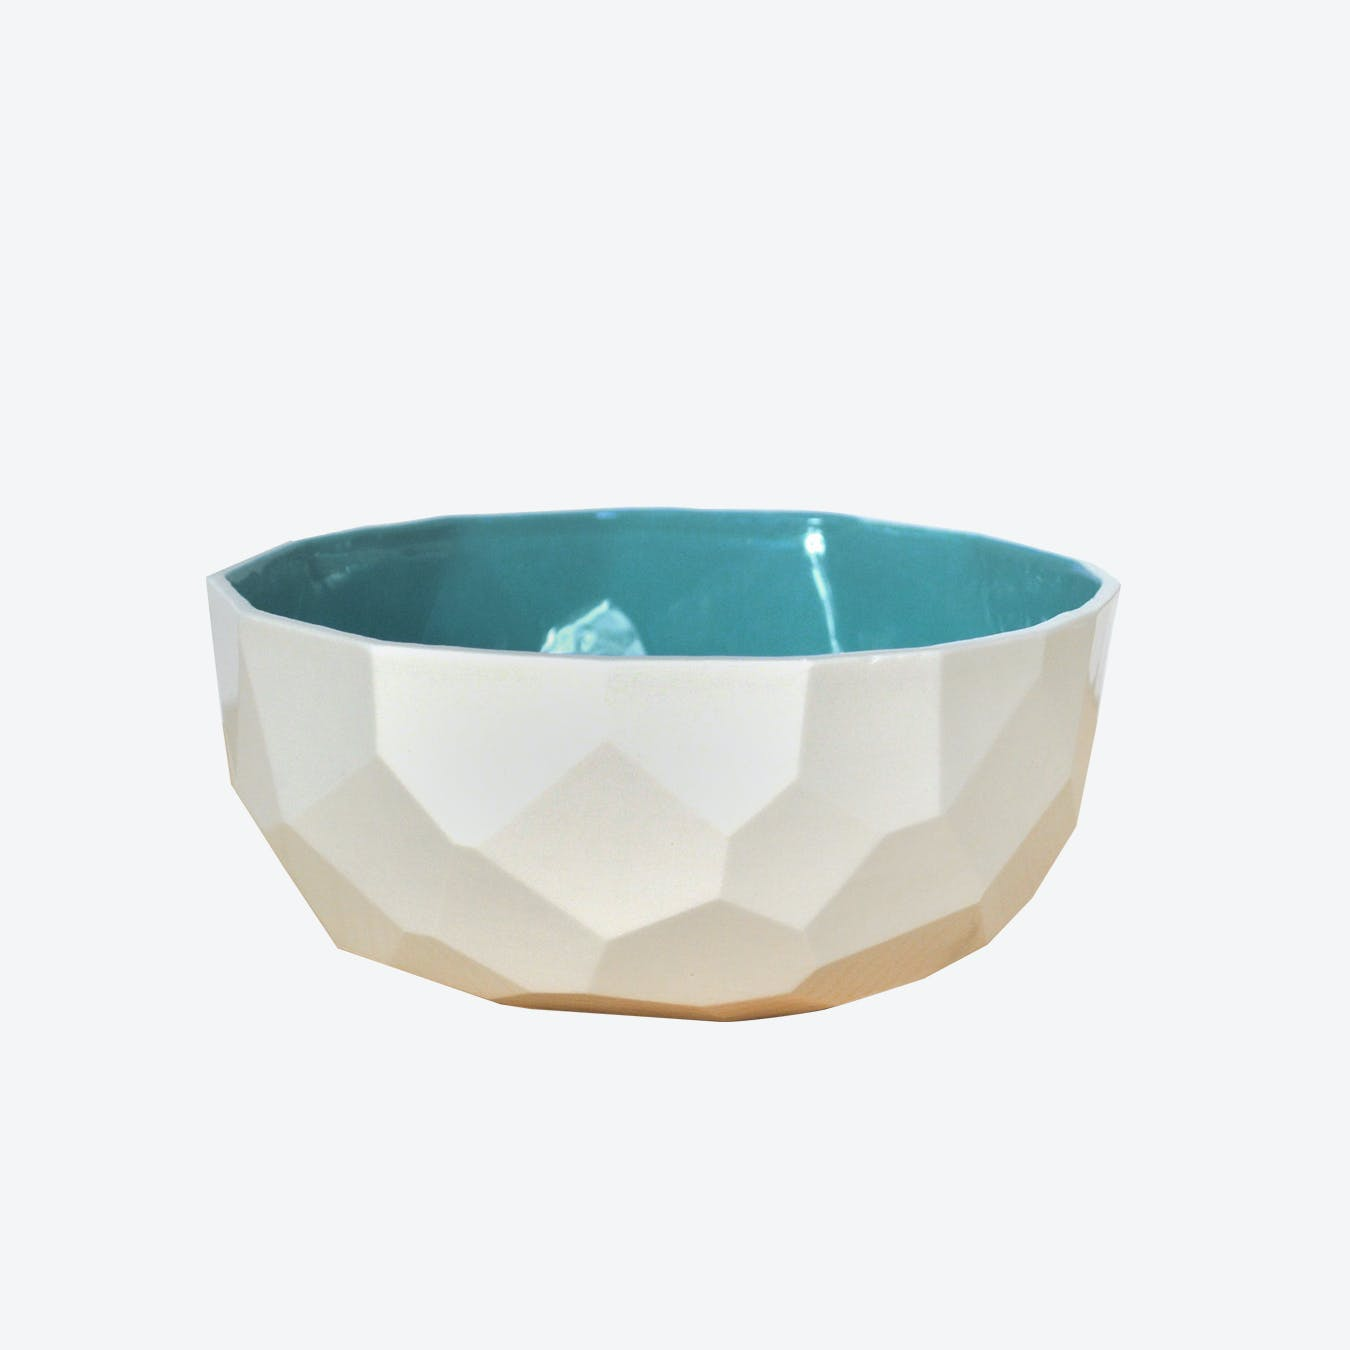 Emerald Green Poligon Fruit Bowl